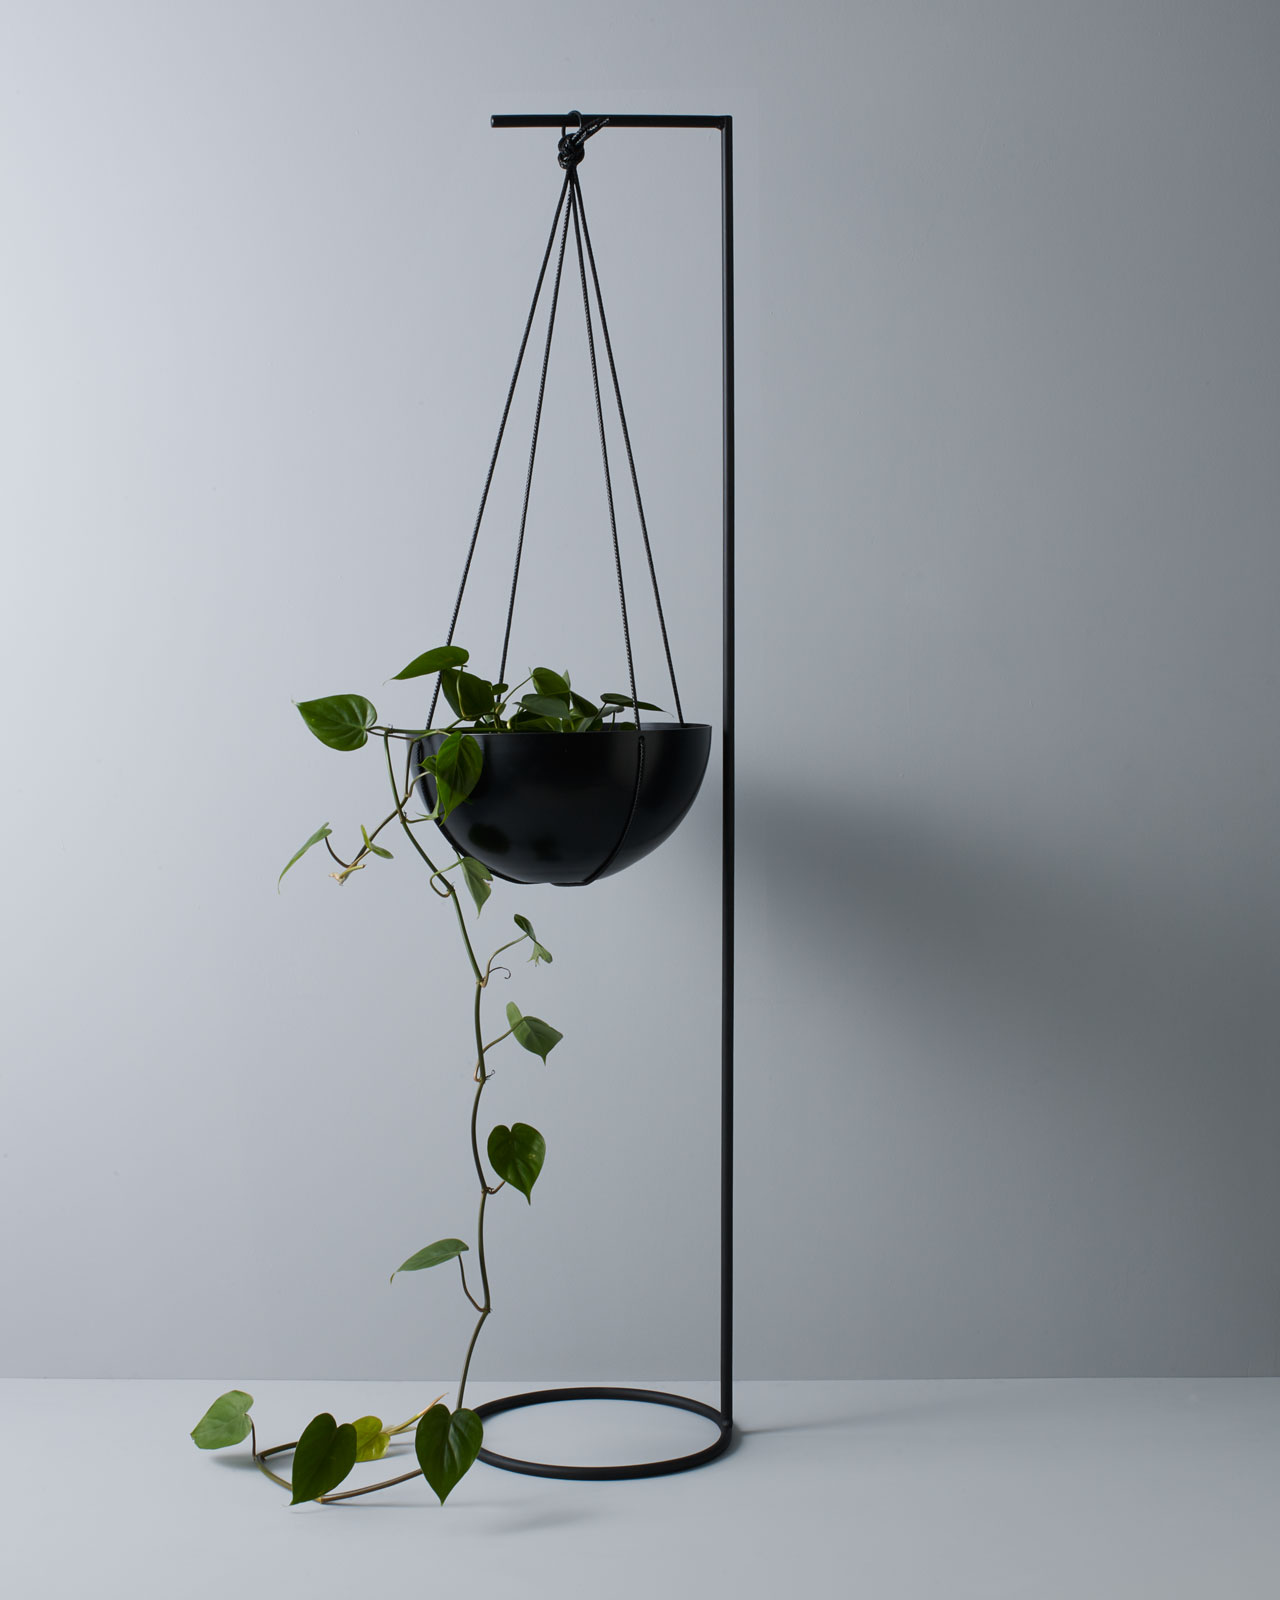 Image of: The Unearthed Garden Hanging Planter Stands